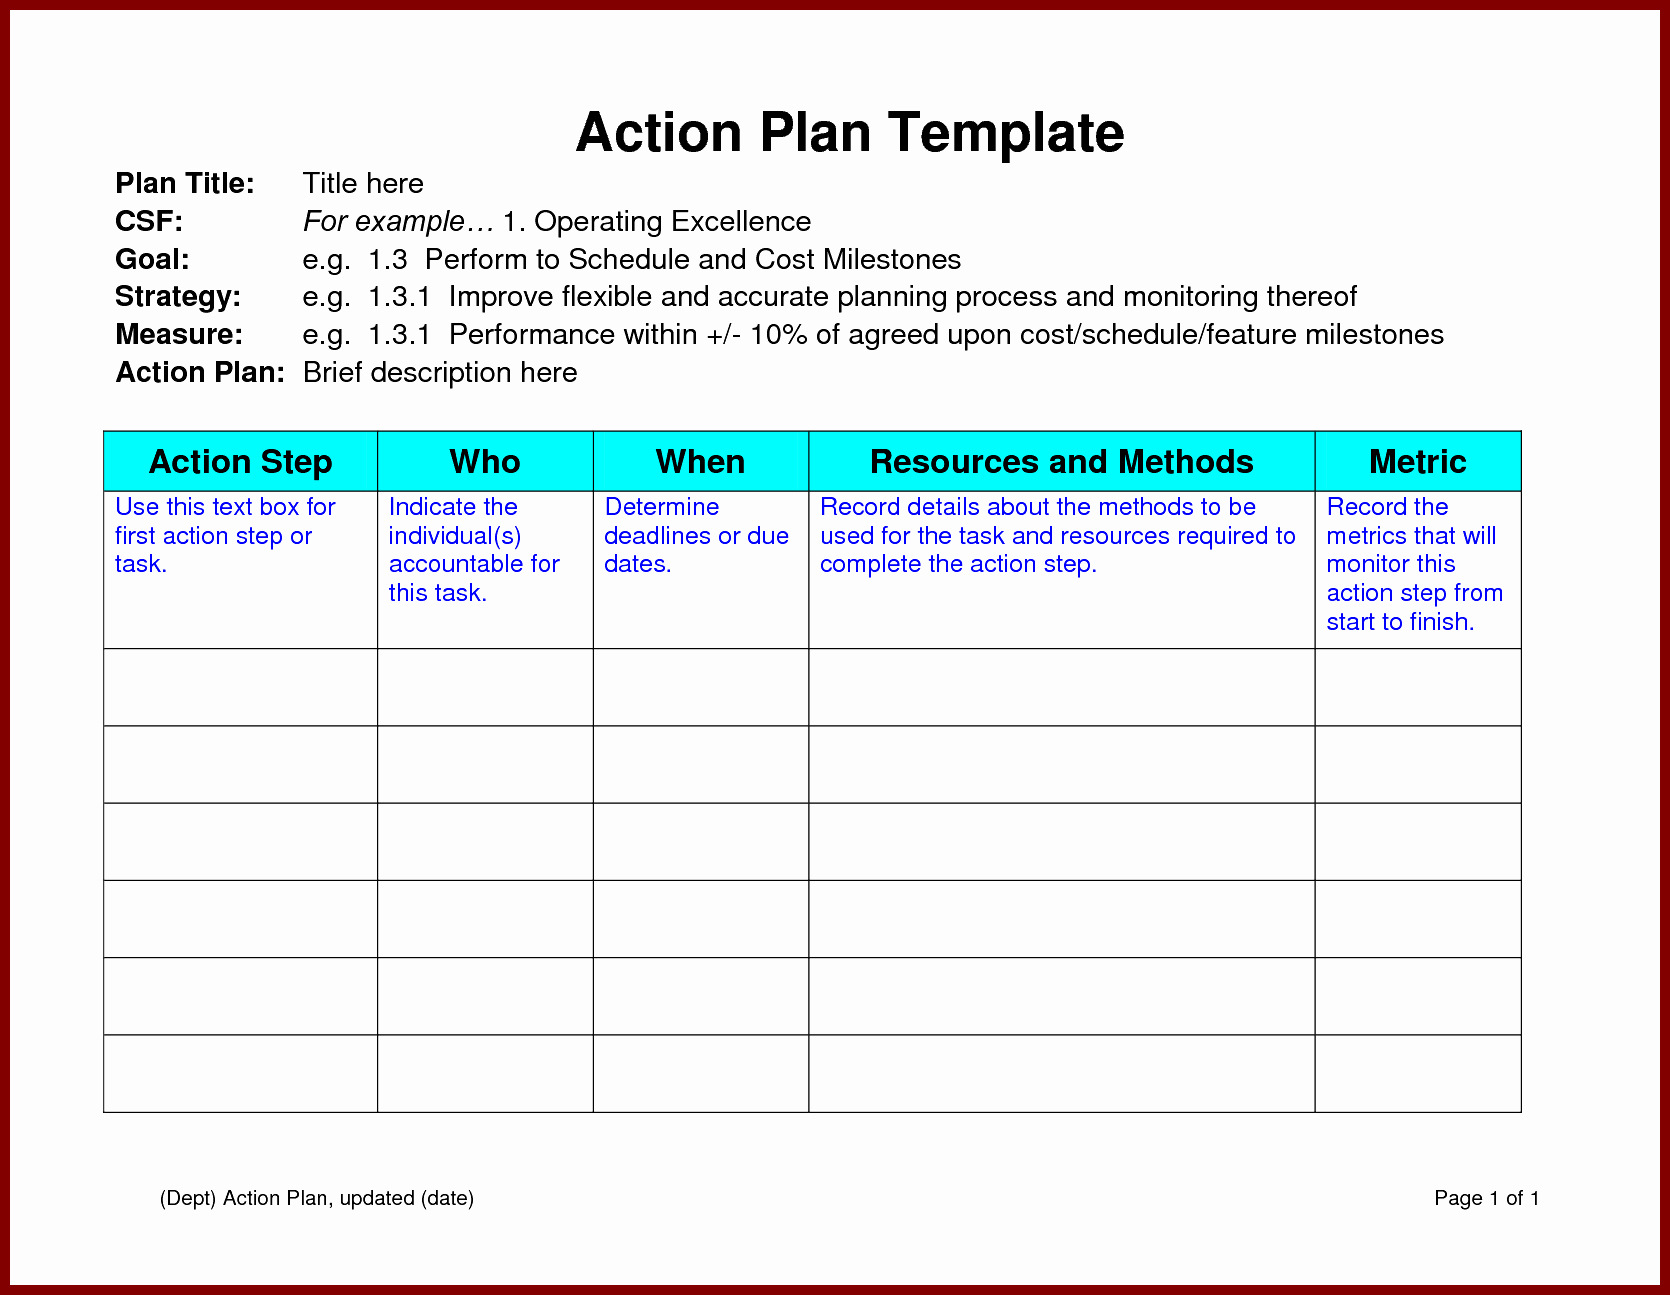 Action Plan Template Word Elegant Action Plan Template Word Example Mughals